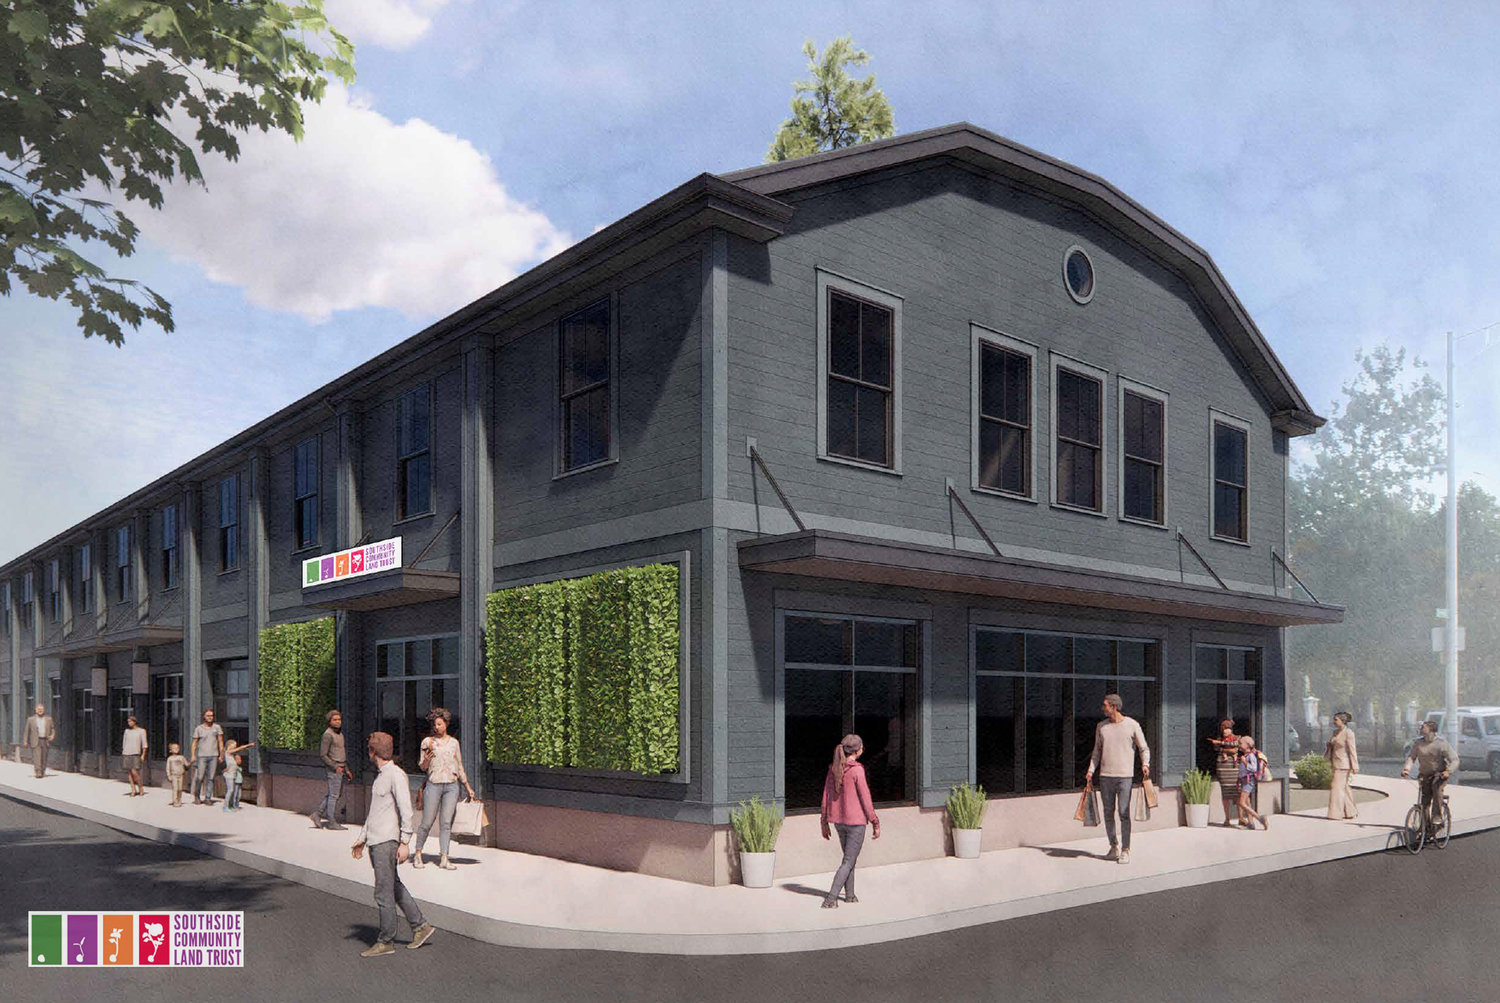 SCLT's new community food hub on Broad Street is slated to open this summer